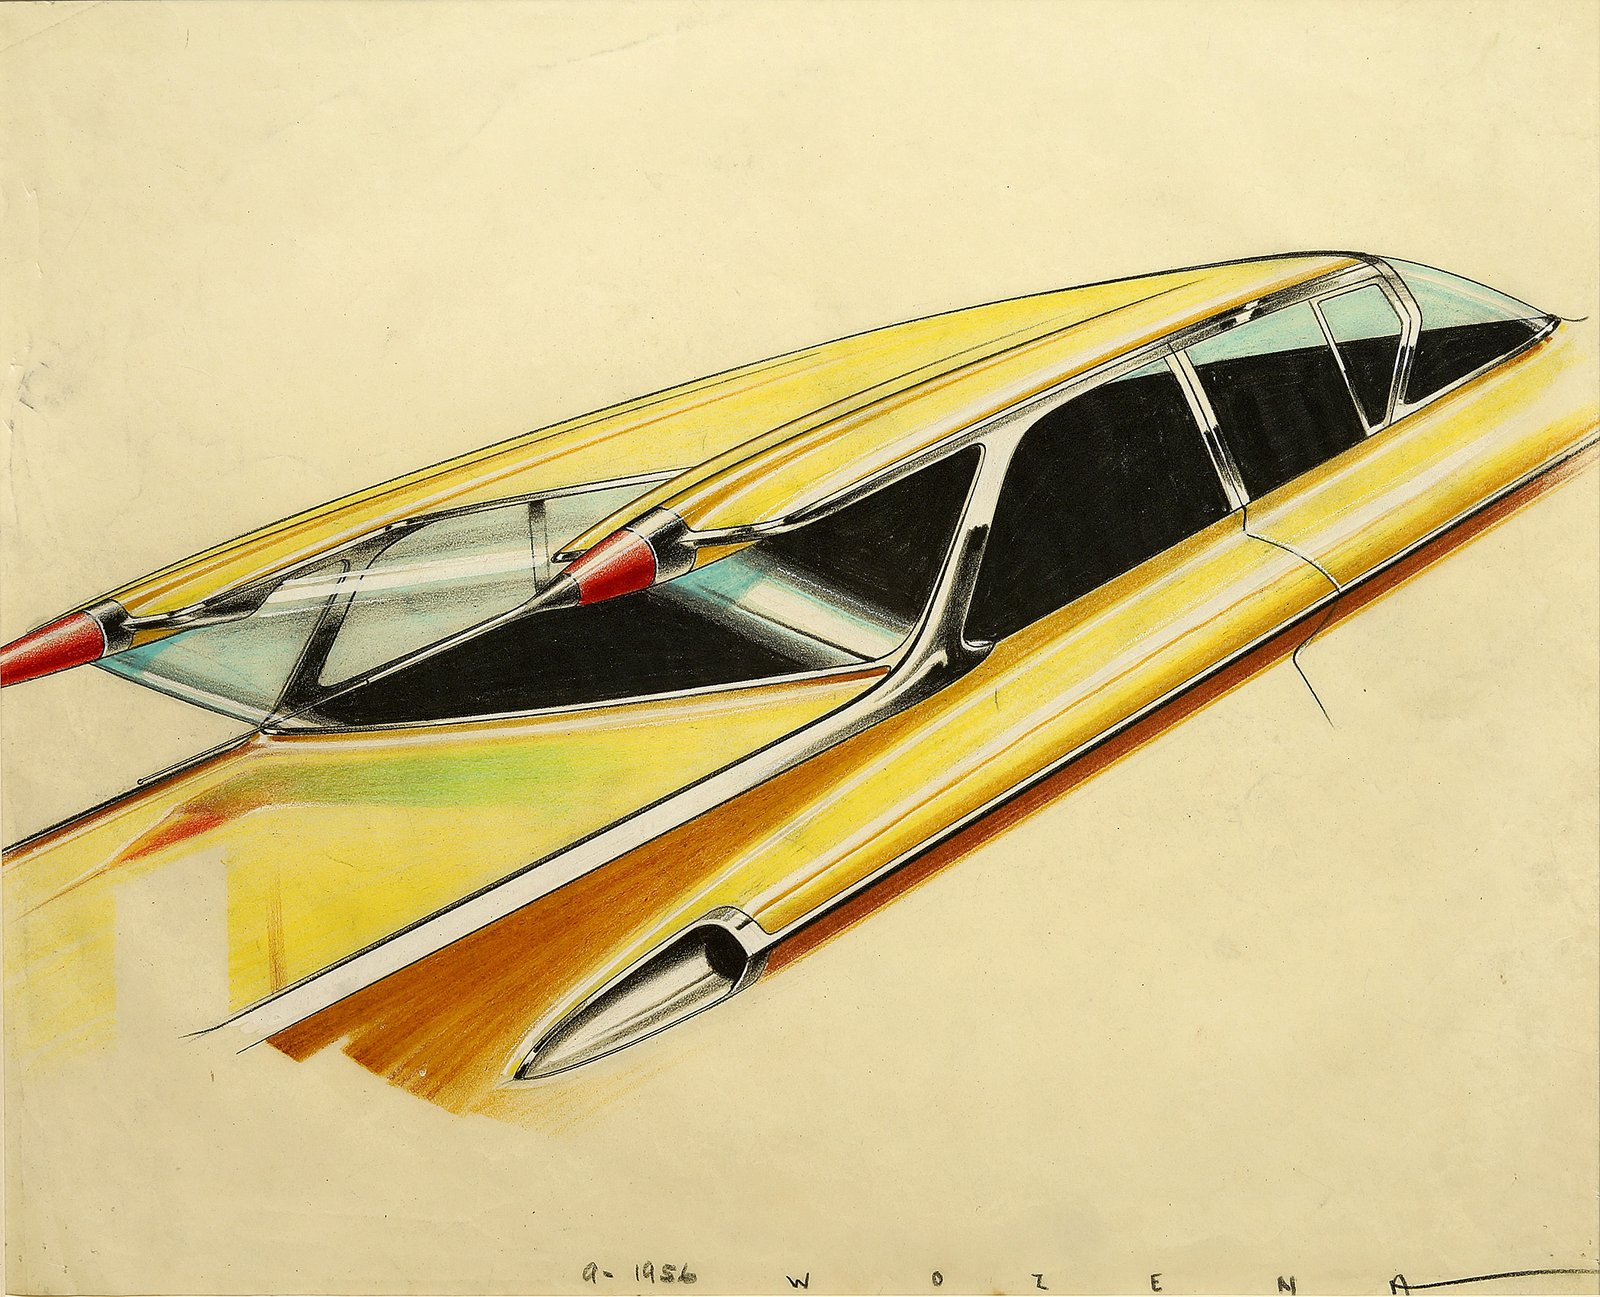 Pete Wozena, Roofline study, c. 1955.  Photo 7 of 7 in When the Future Had Fins: Fantastical Vintage Auto Drawings